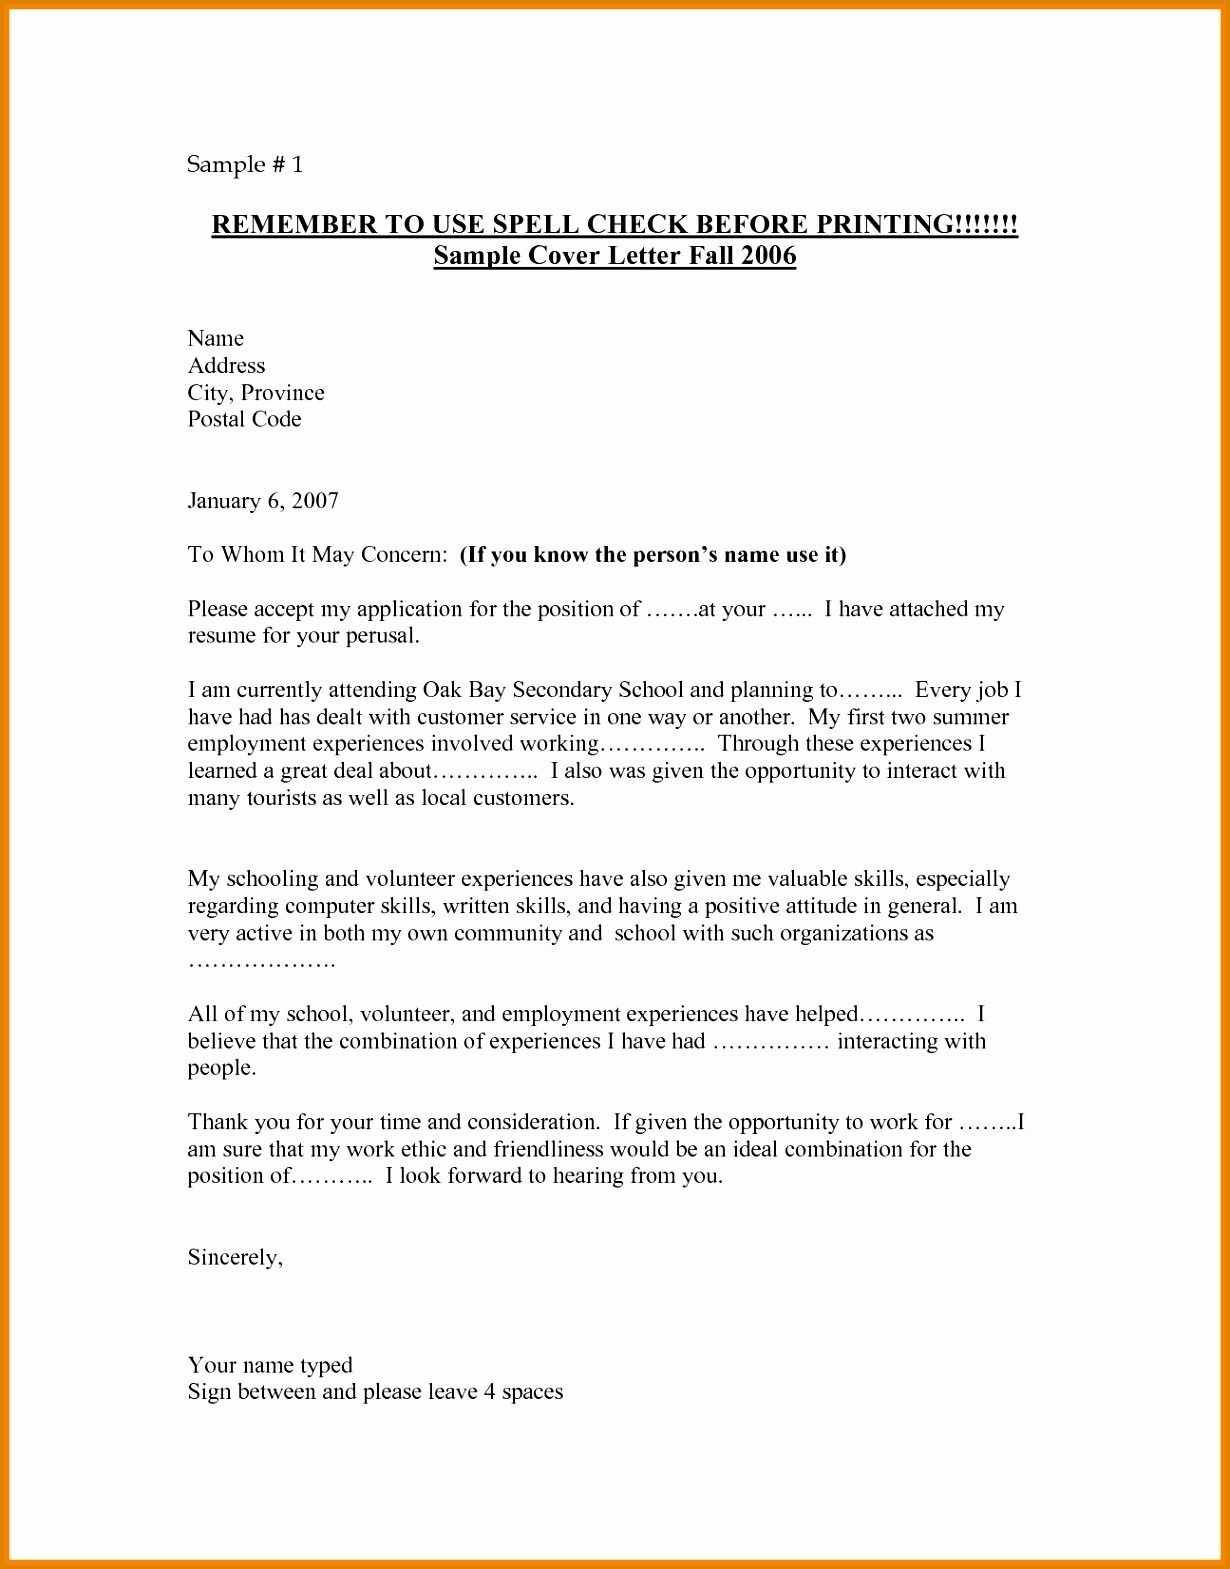 Employment Verification Letter to whom It May Concern Template - Letter format to whom It May Concern Re New How to Write to whom It